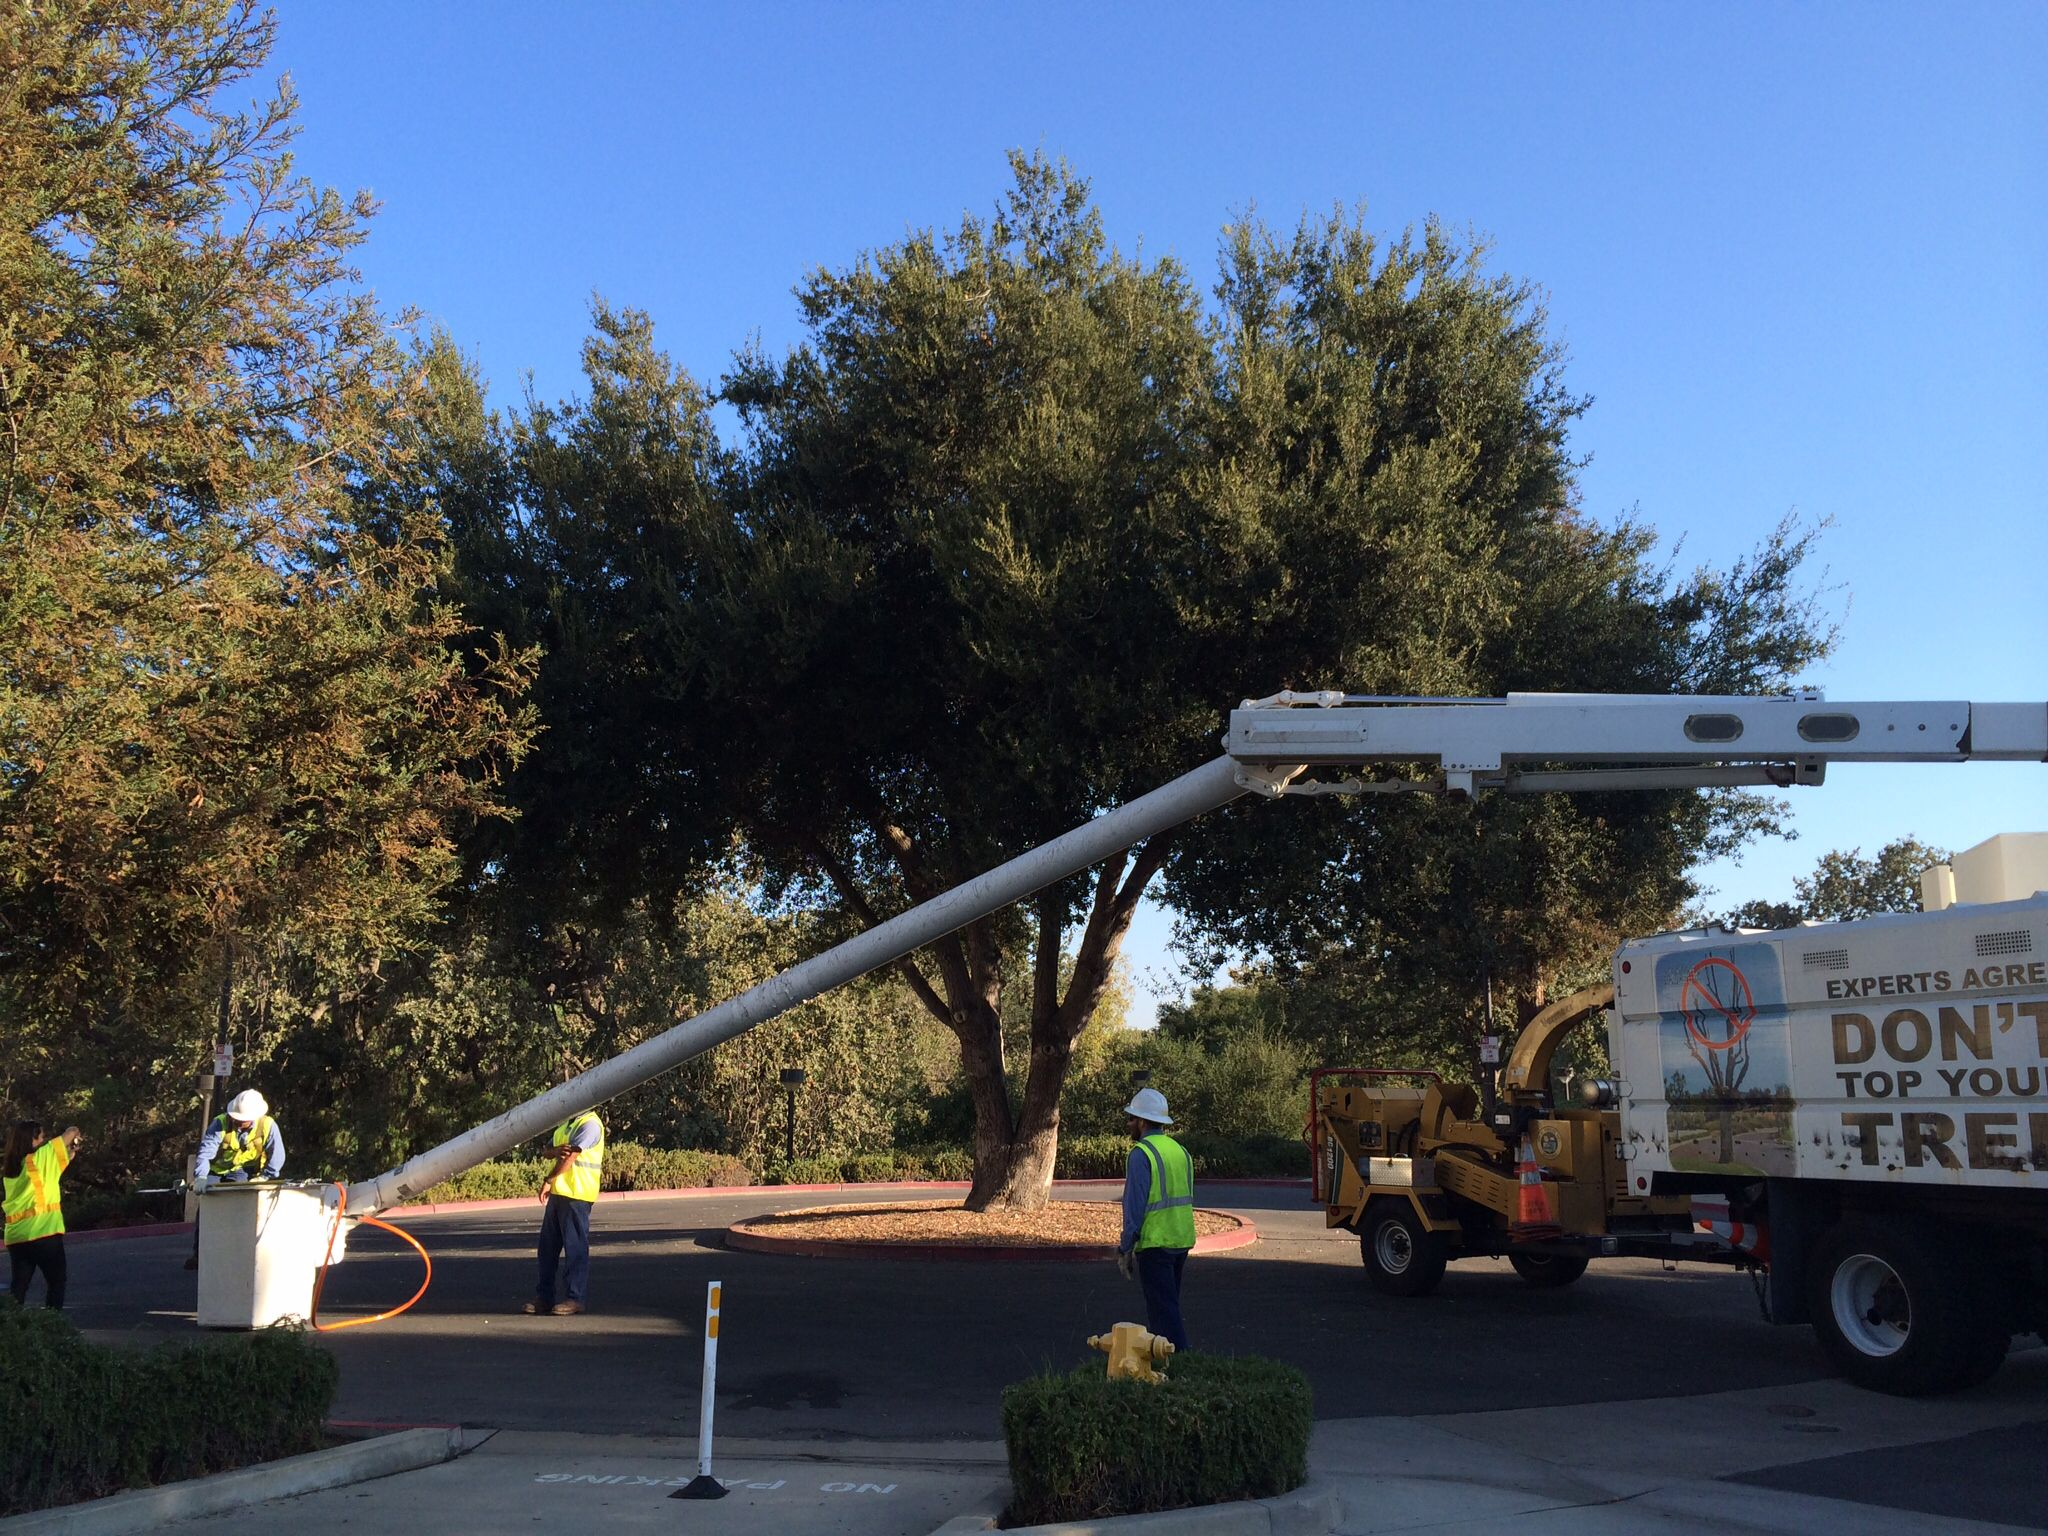 Prepping for new paving in the library parking lots this week.